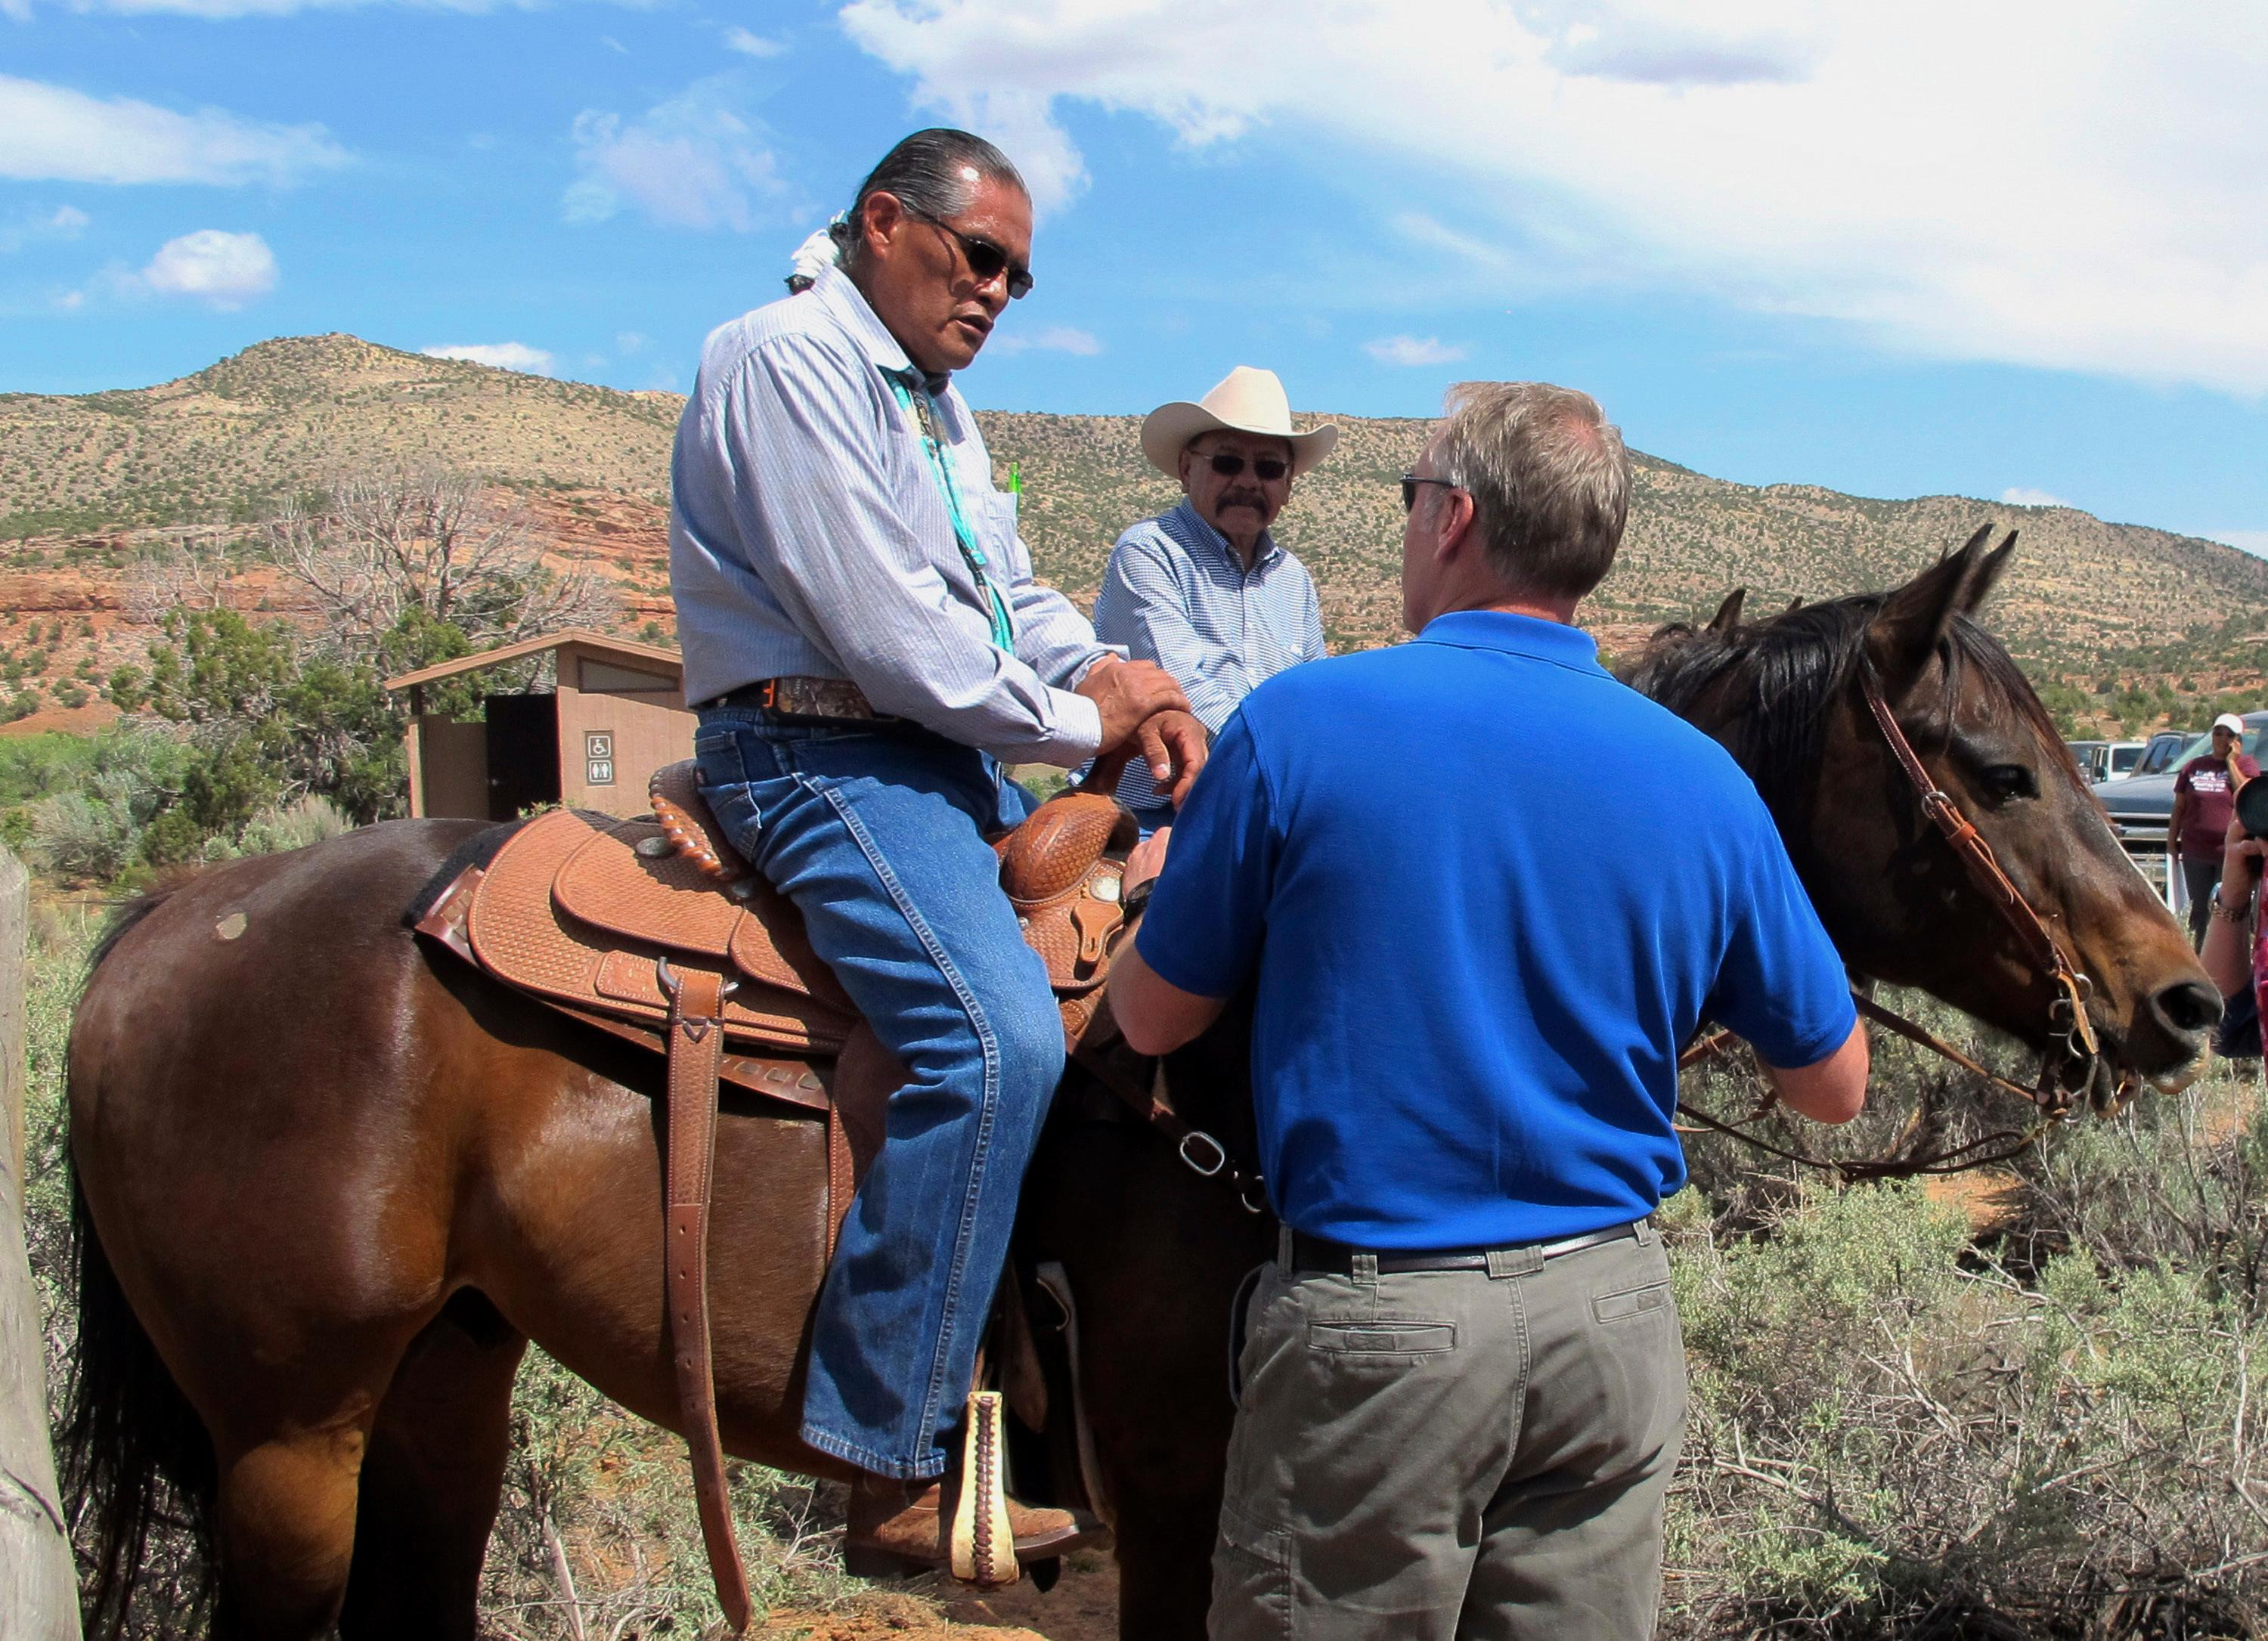 Interior Secretary Ryan Zinke, right, talks with two men on horses Monday, May 8, 2017, at the Butler Wash trailhead within Bears Ears National Monument near Blanding, Utah. Zinke says he wants to make sure Native American cultural standing is preserved in a new national monument but cautioned that not all tribal members share the same opinion about it. (AP Photo/Michelle Price)